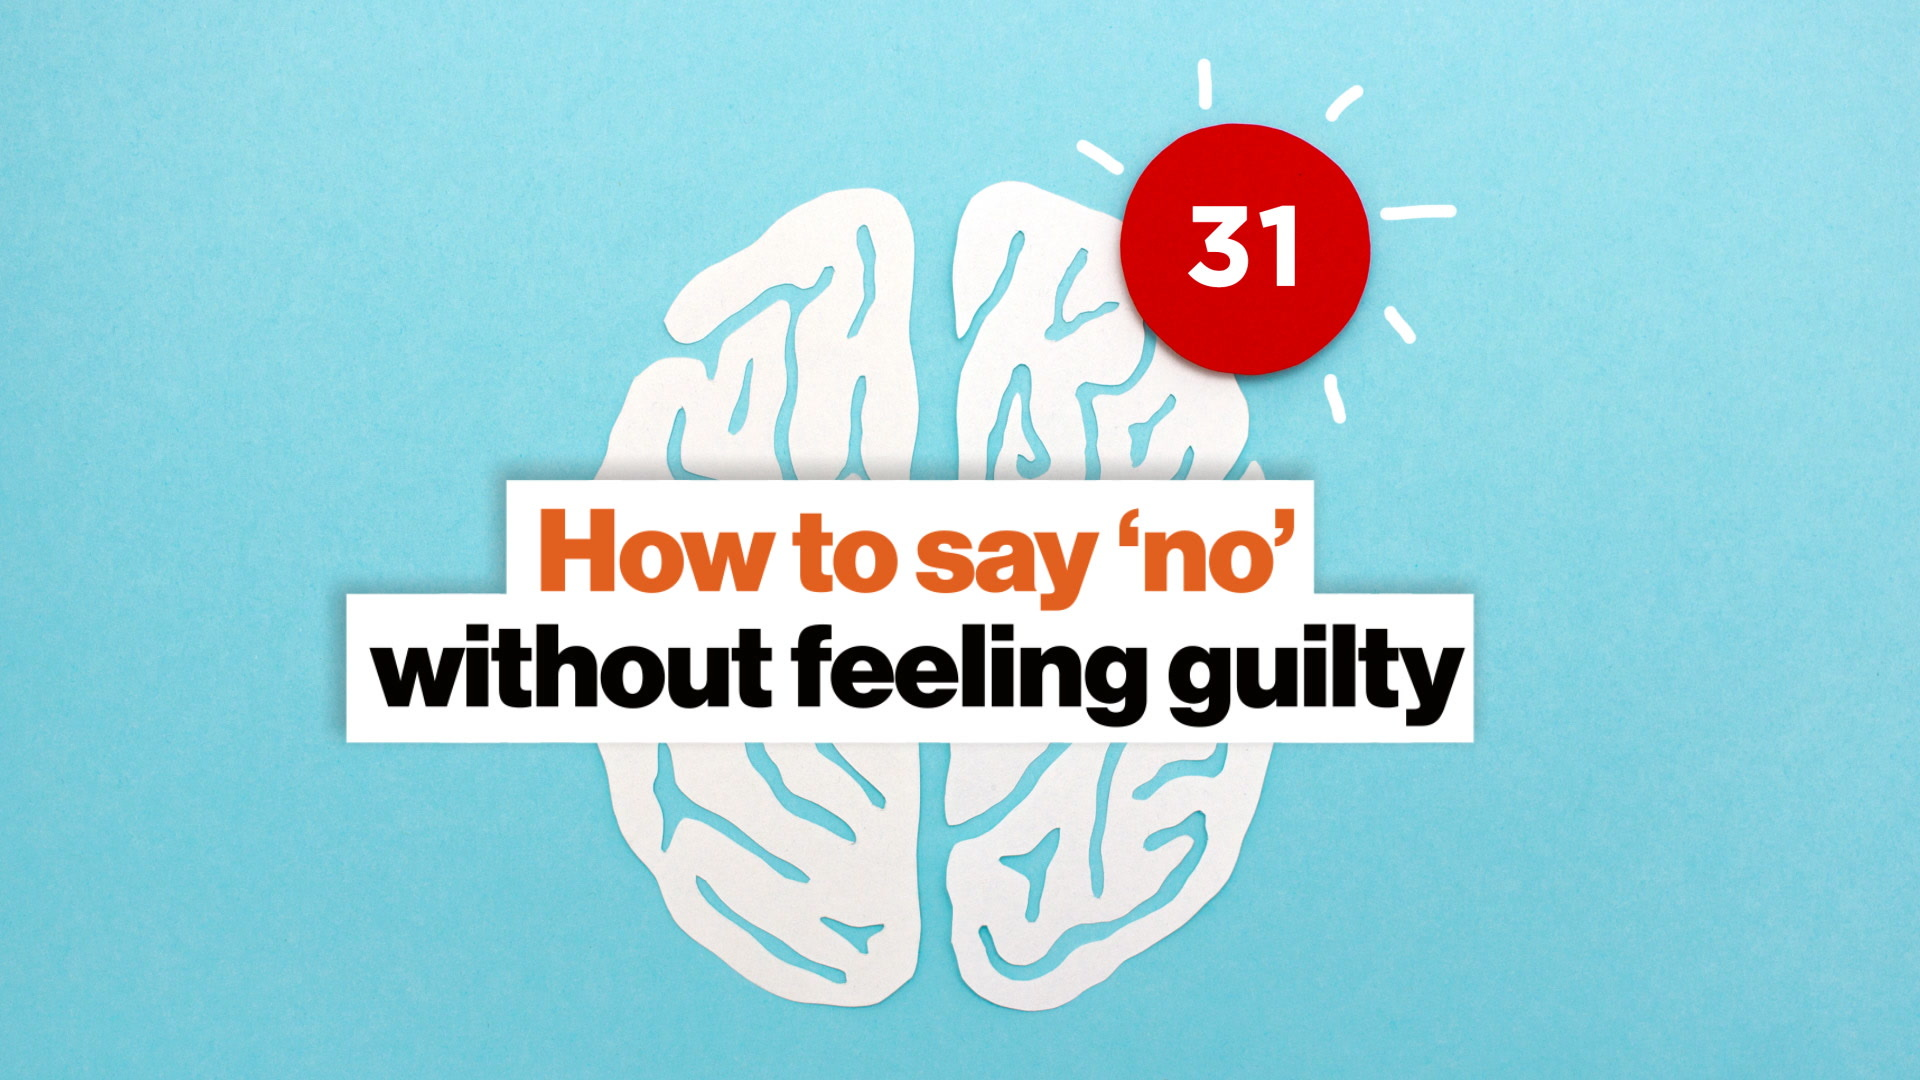 Saying no is hard. These communication tips make it easy.